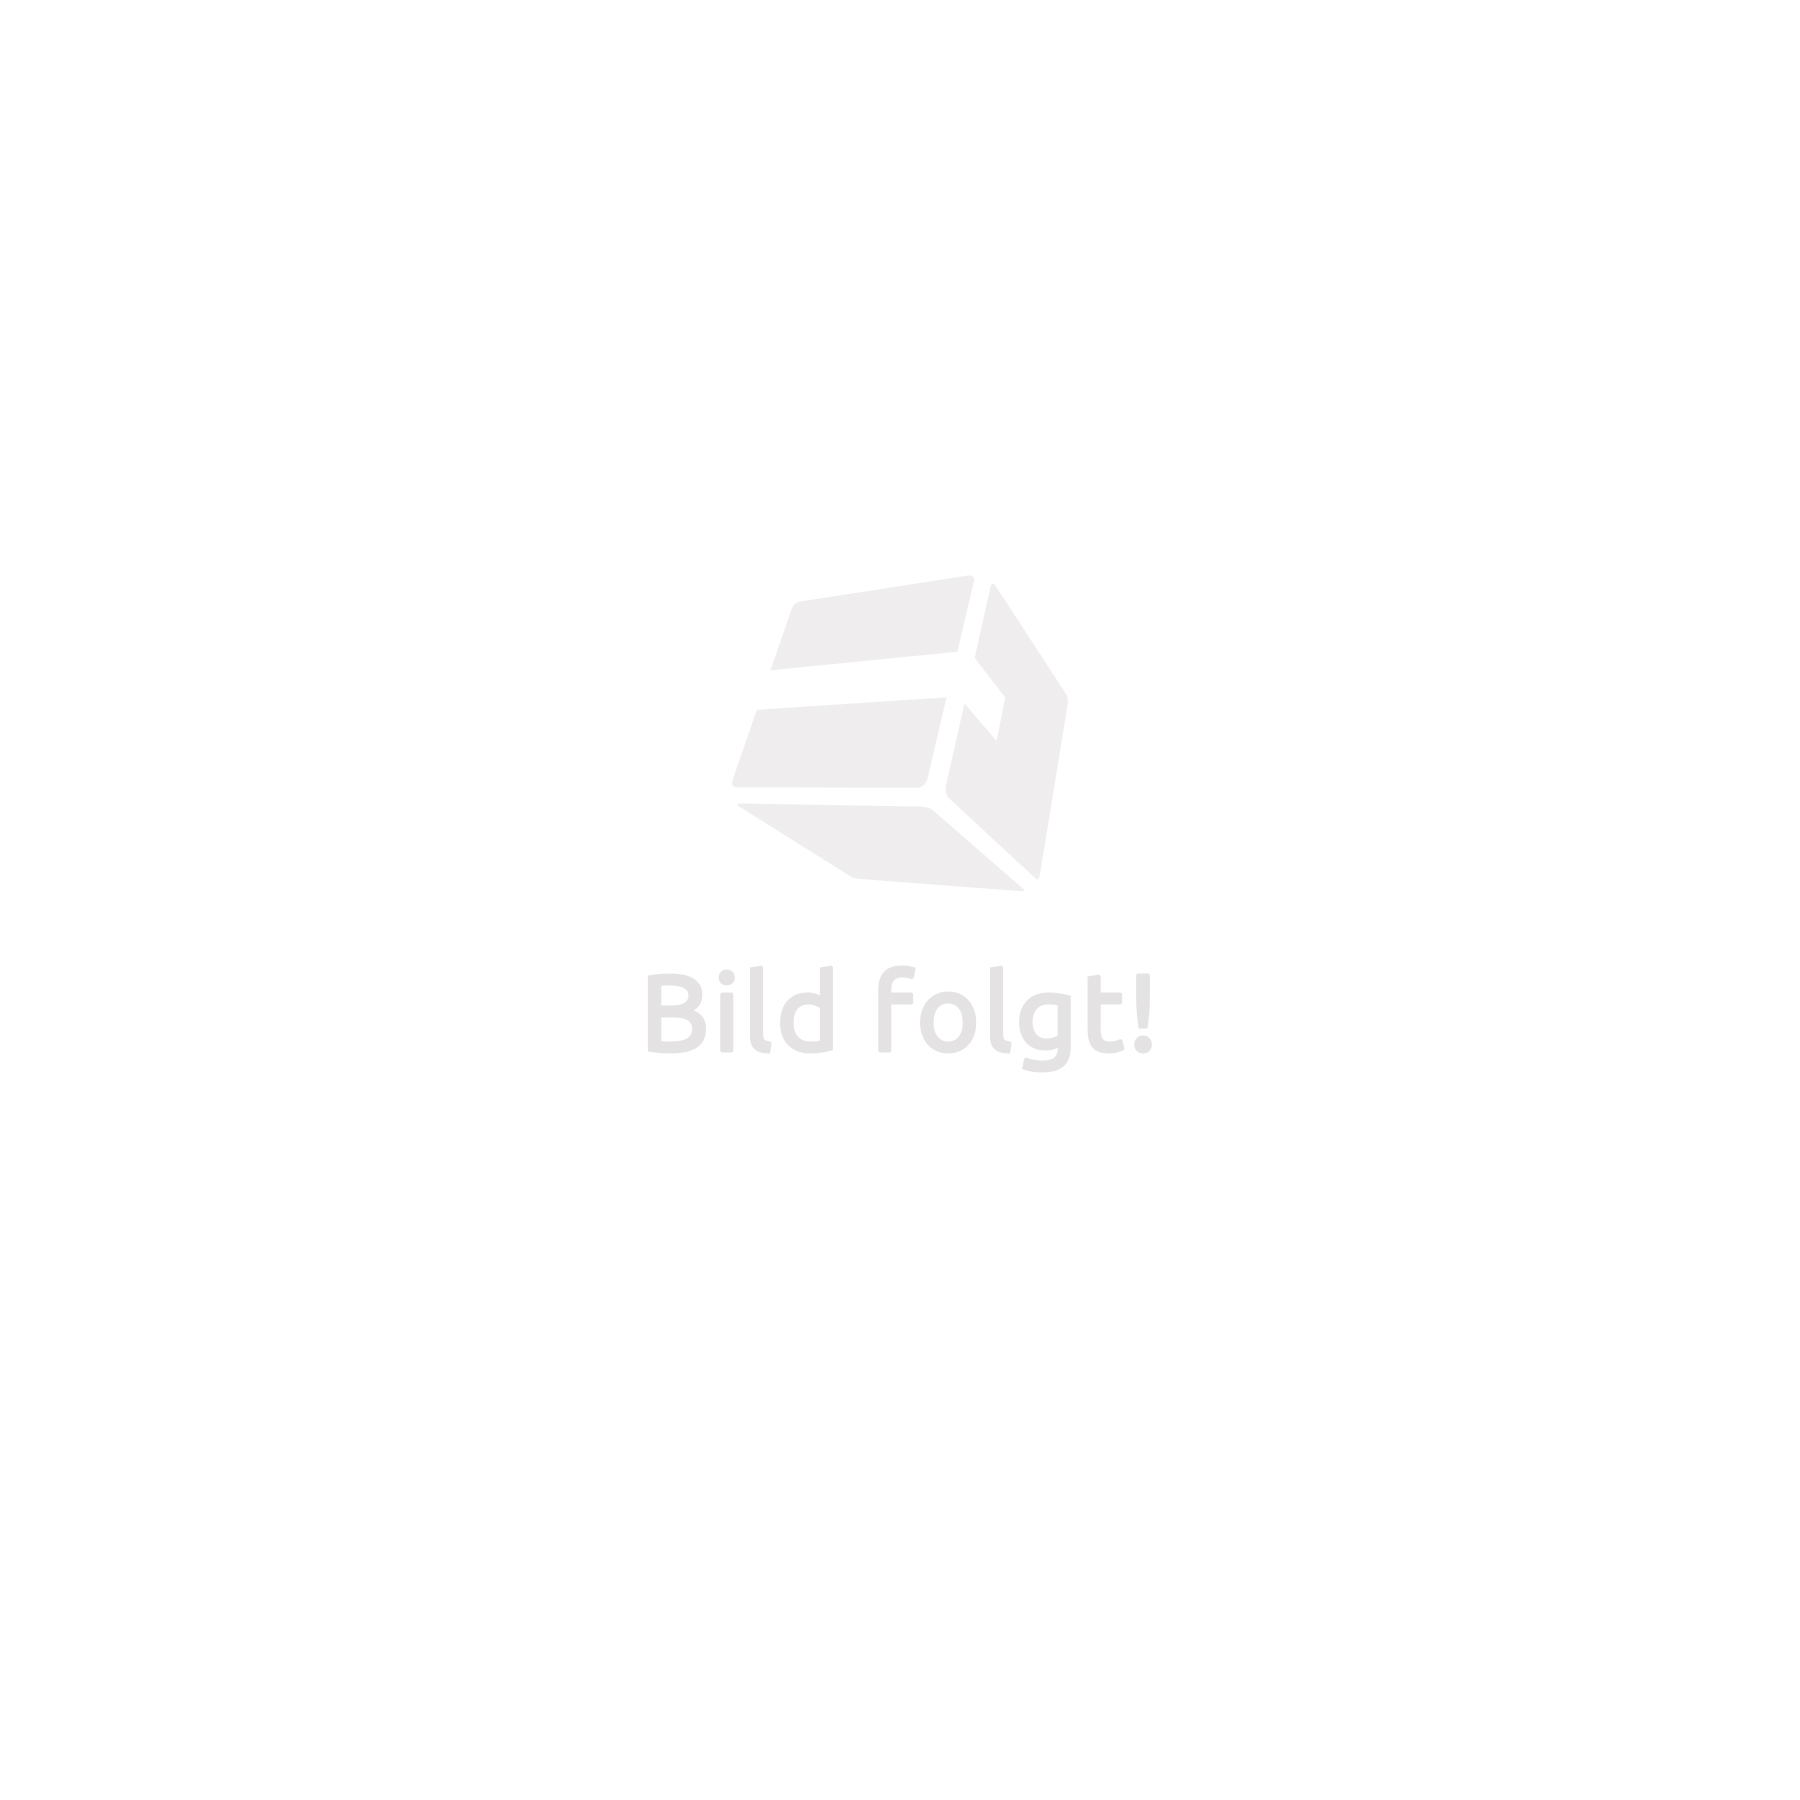 Rollcontainer aus Holz eiche/hell